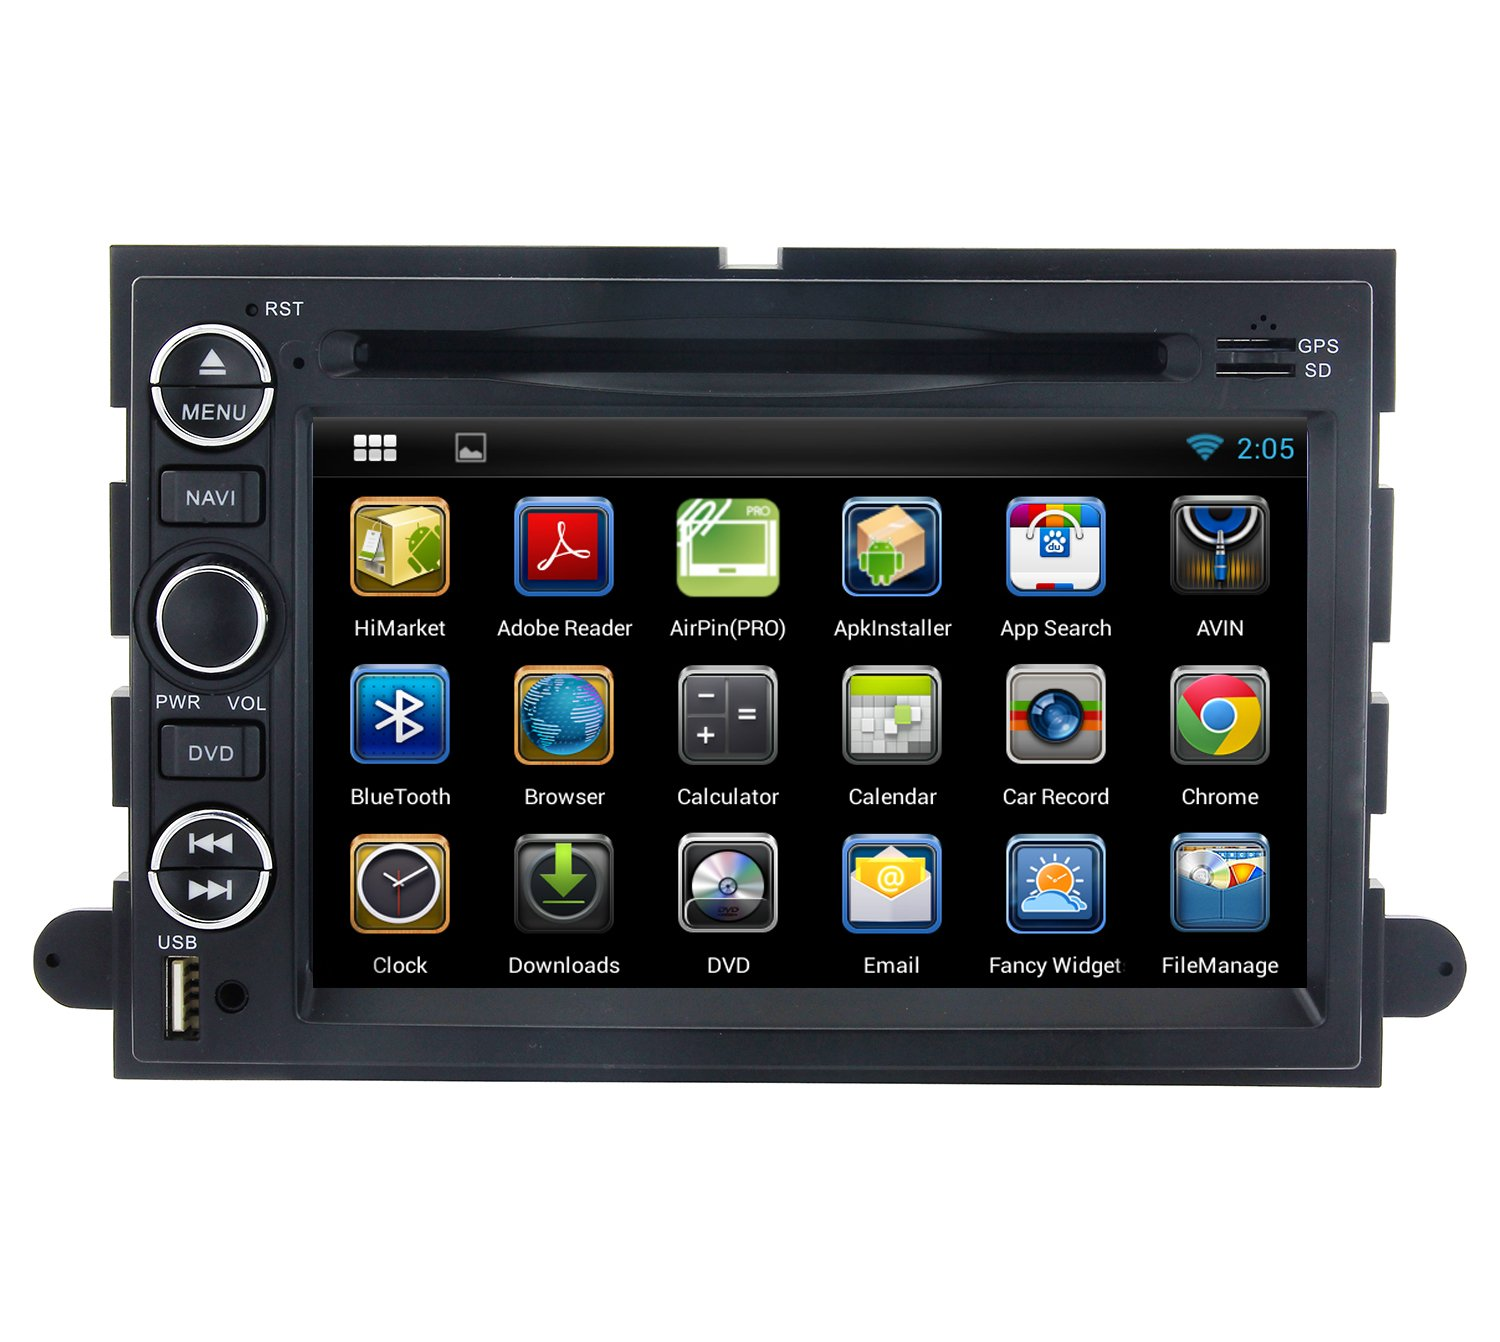 YINUO 7 In Dash Car Stereo Bluetooth GPS Navigation AM/FM Radio Multimedia Entertainment System for Ford F150 2005-2009 Ford Mustang 2007-2010 Ford Expedition 2007-2010 Ford Expedition (U324)2007-2010 Ford Expedition EL/Max(U354) 2006-2009 Ford Fusion 4